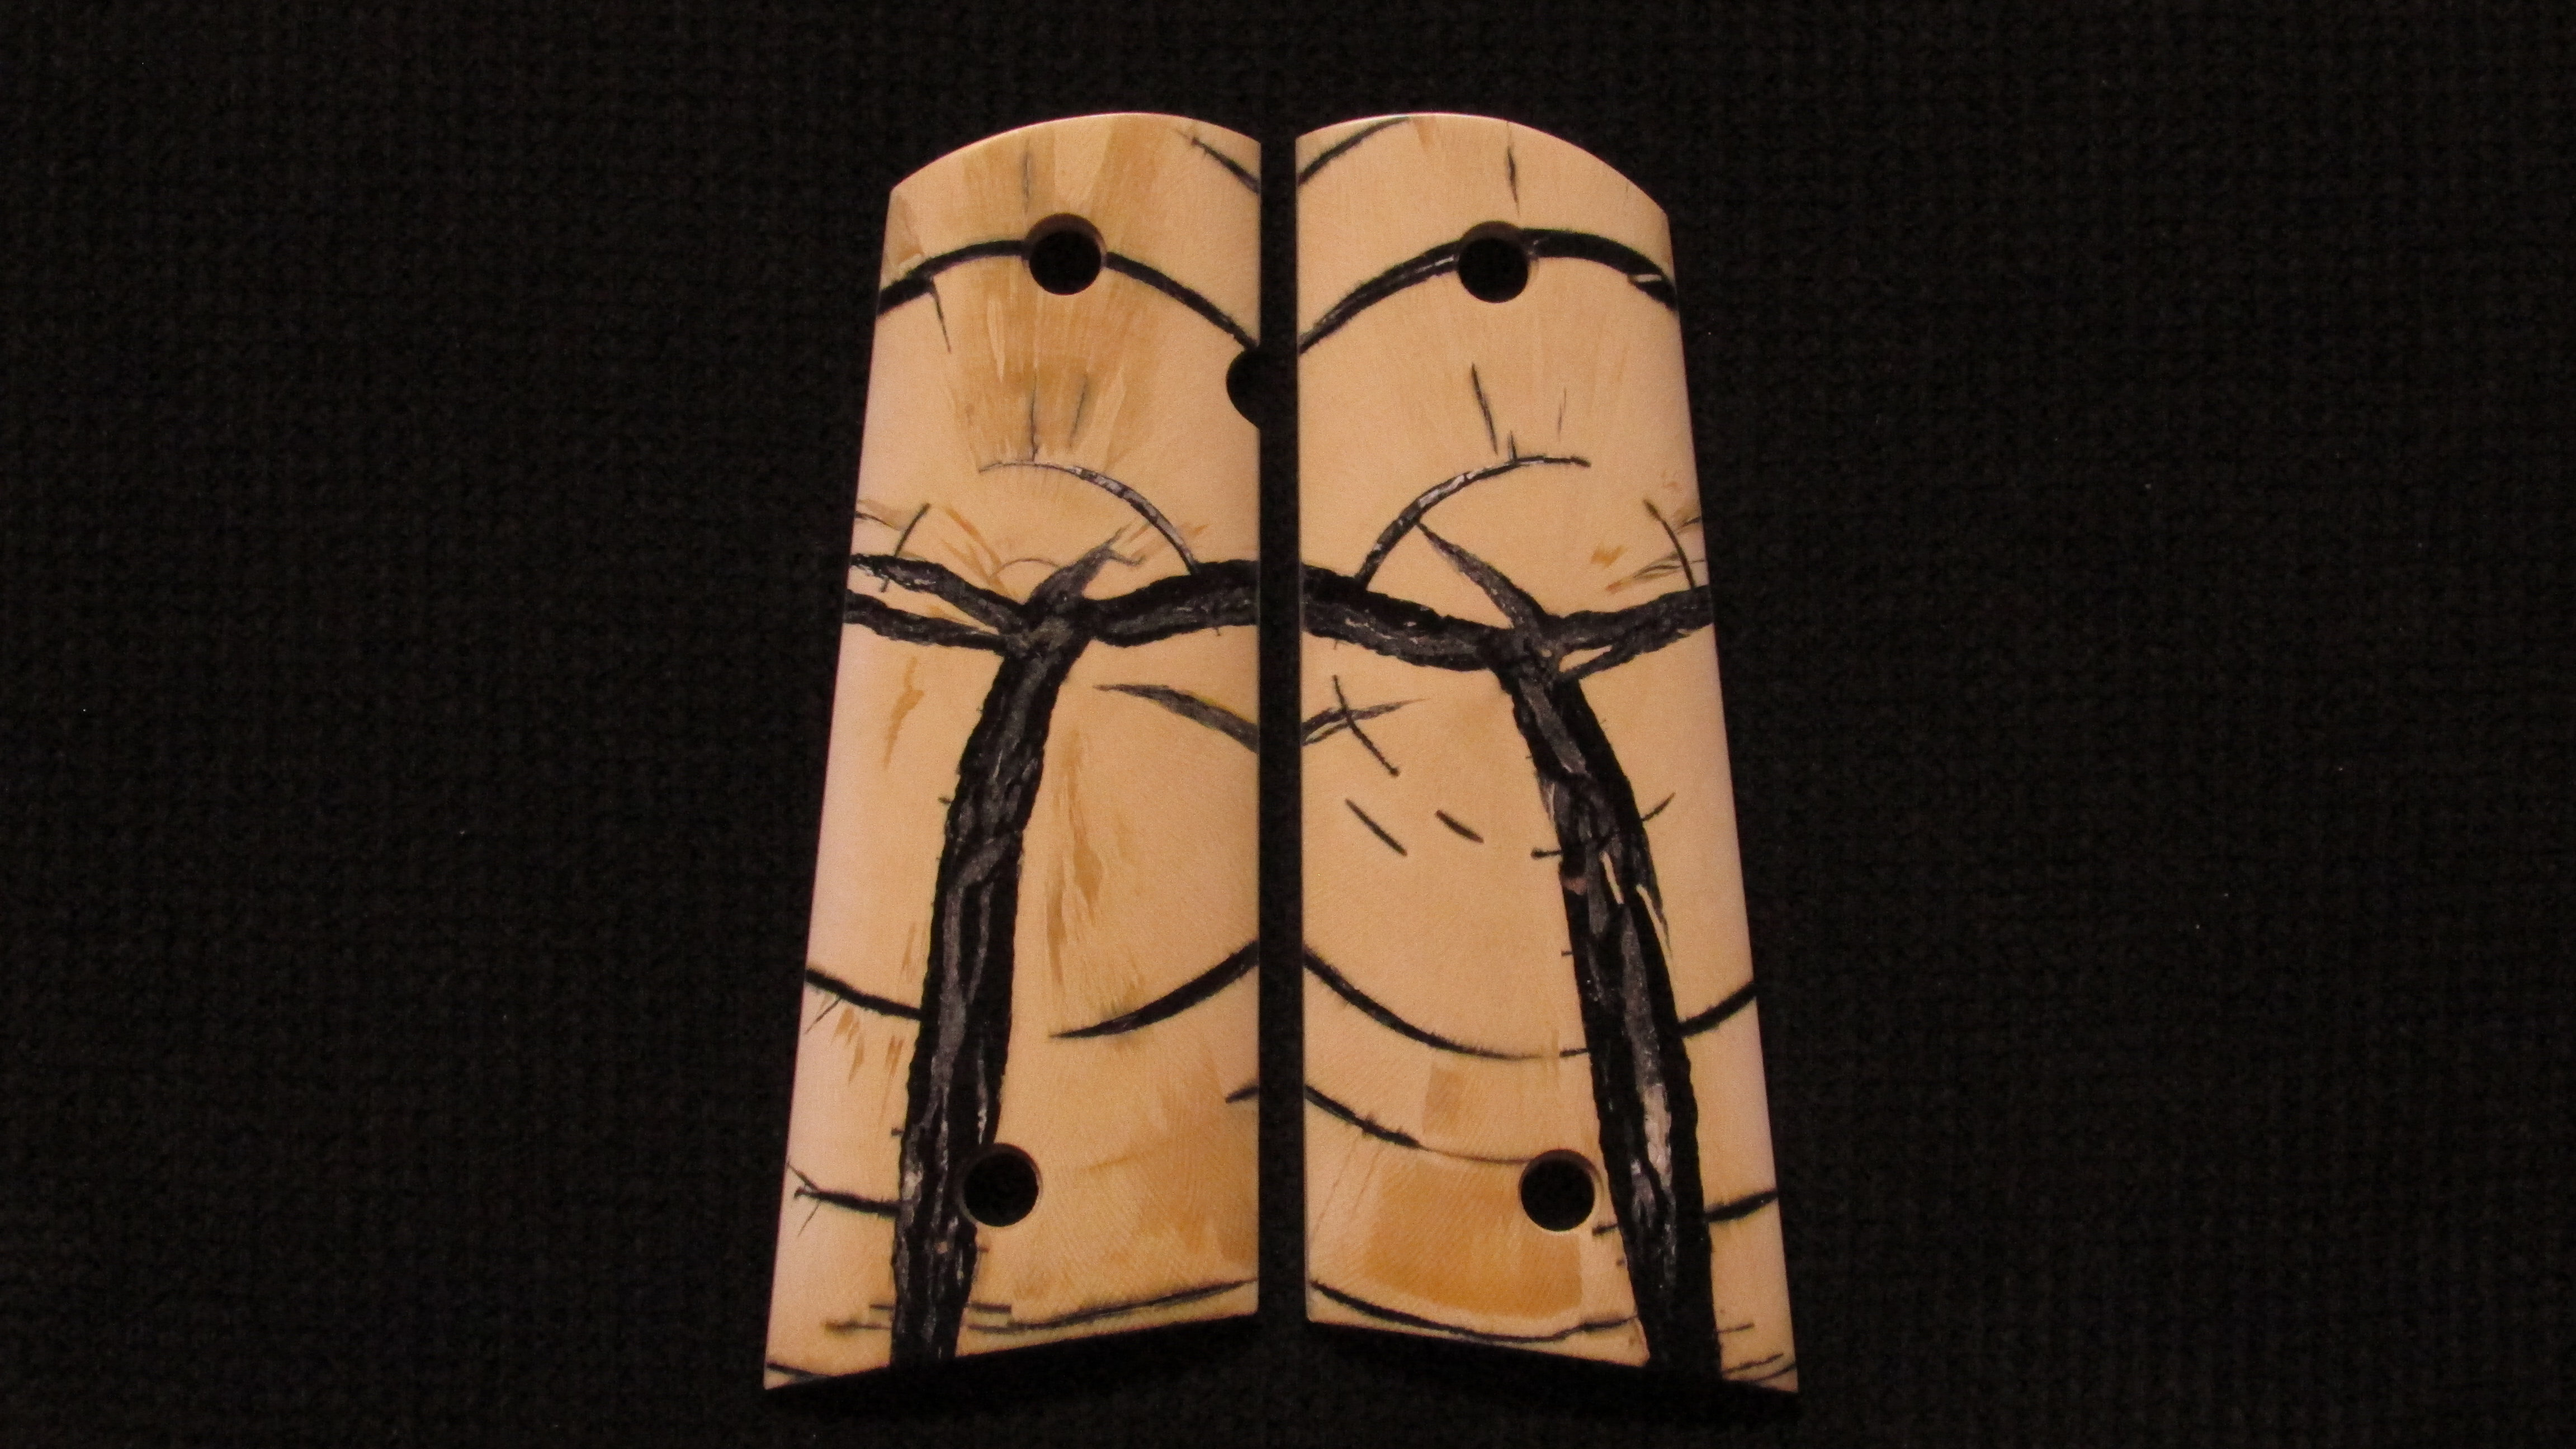 1911 Full size Crosscut Mammoth Ivory grips #229